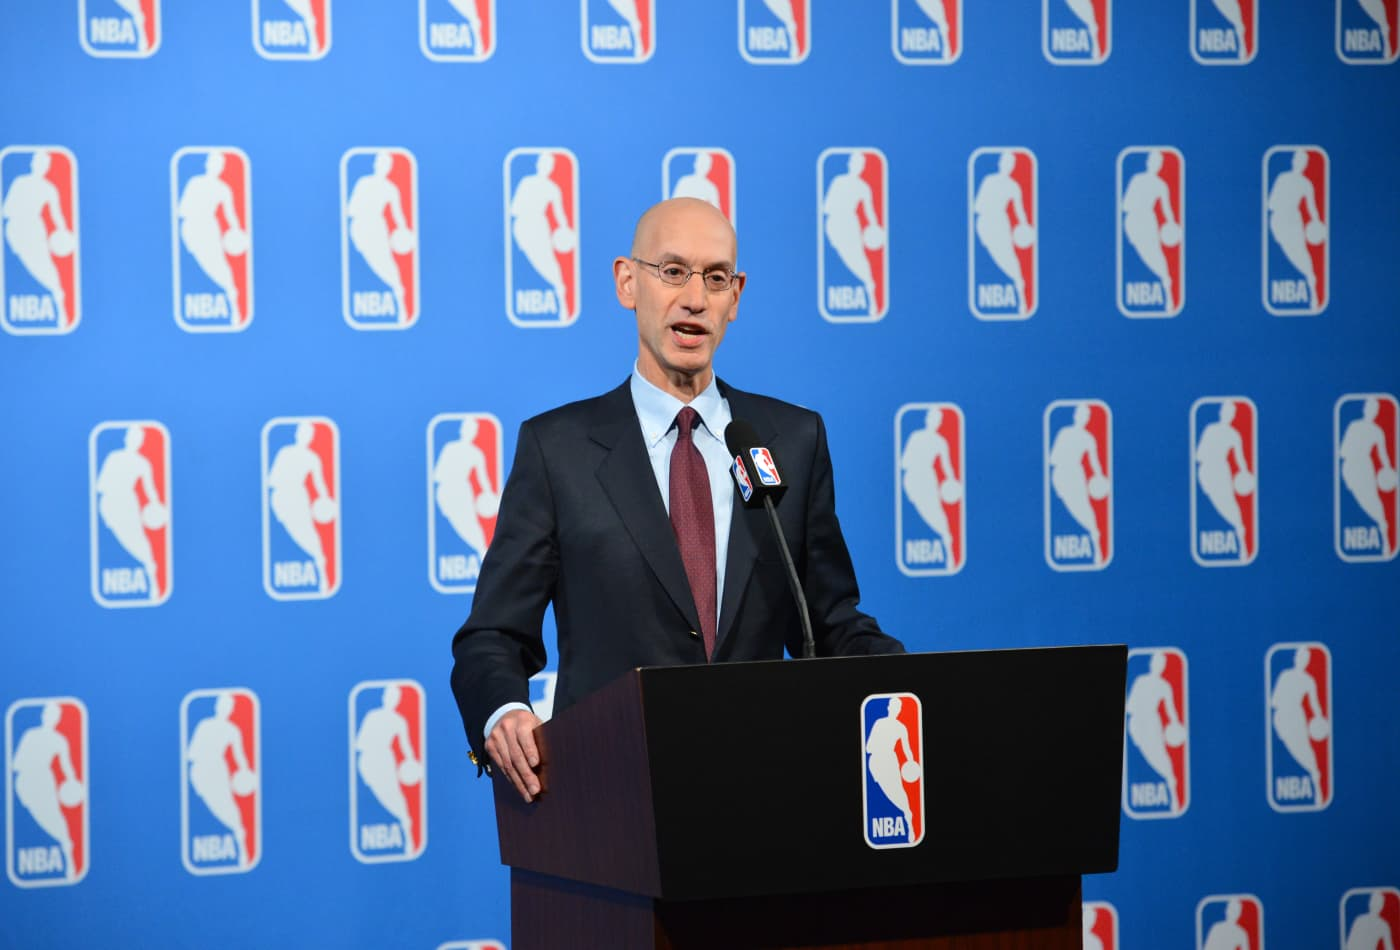 NBA will lose hundreds of millions of dollars due to rift with China, commissioner says